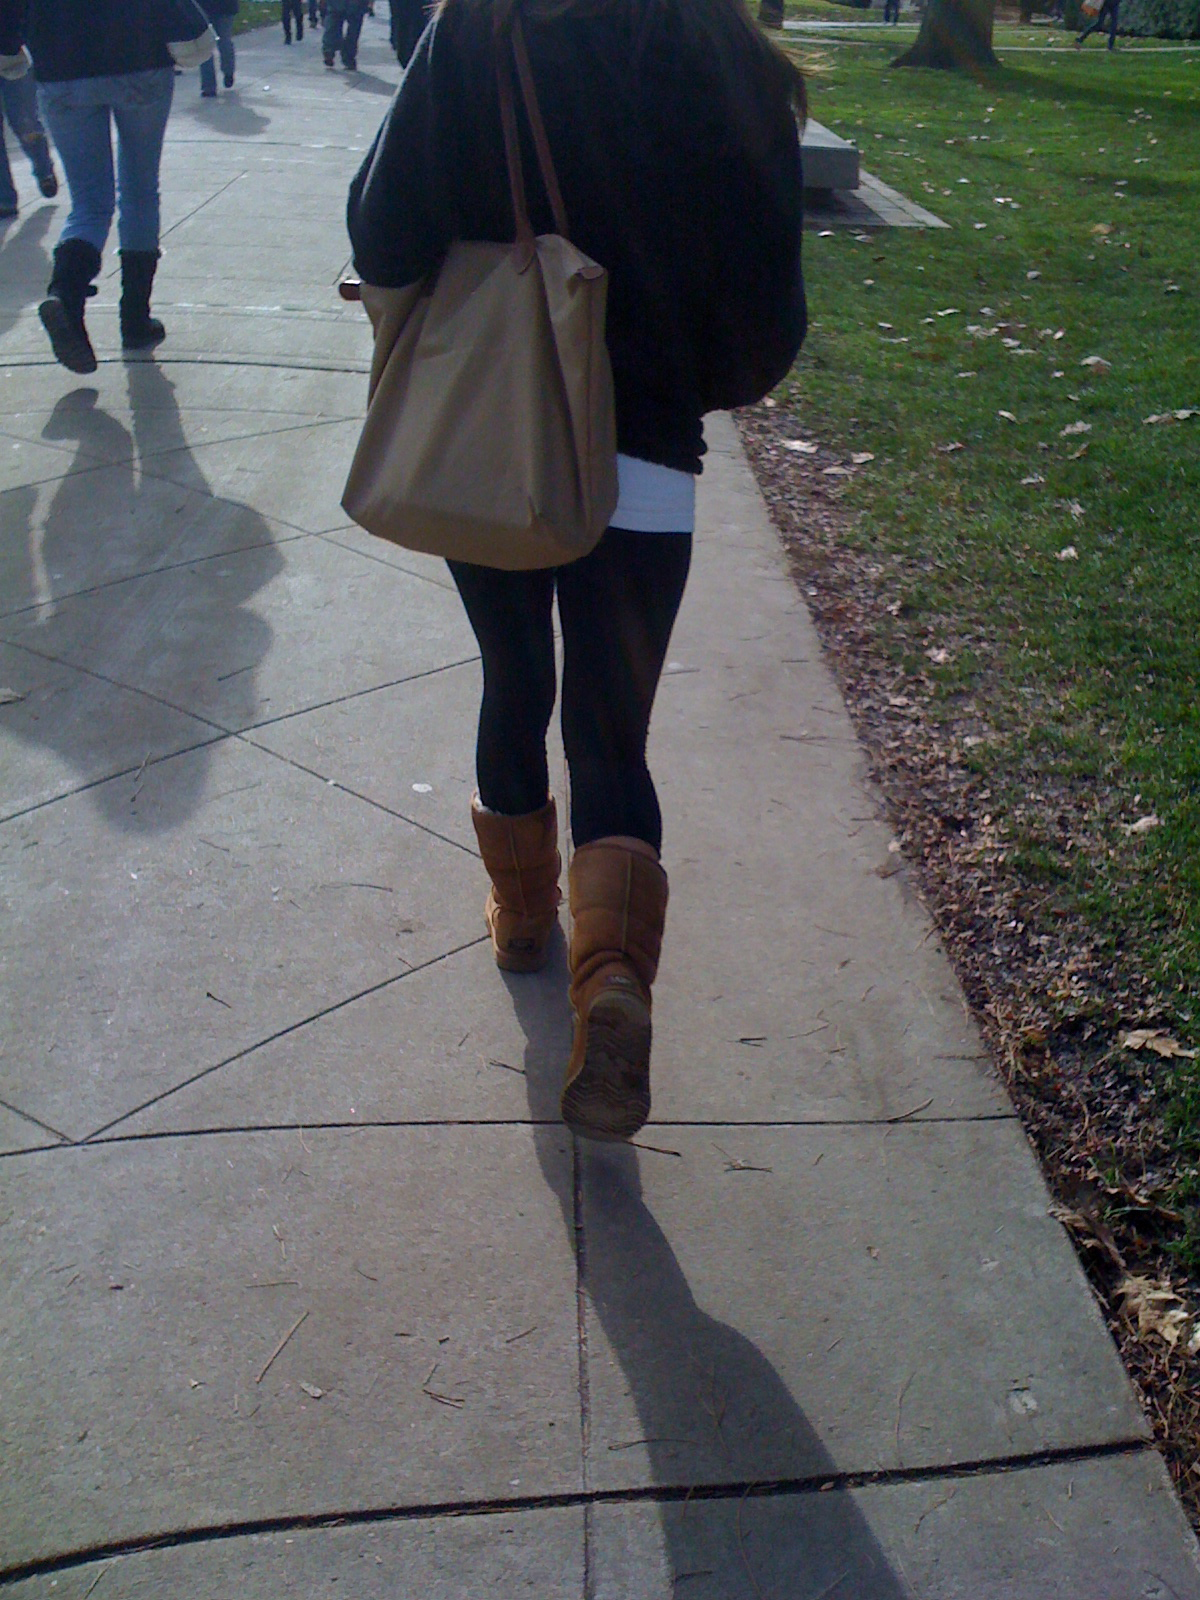 this is 90% of college girls on campus wardrobe (pics